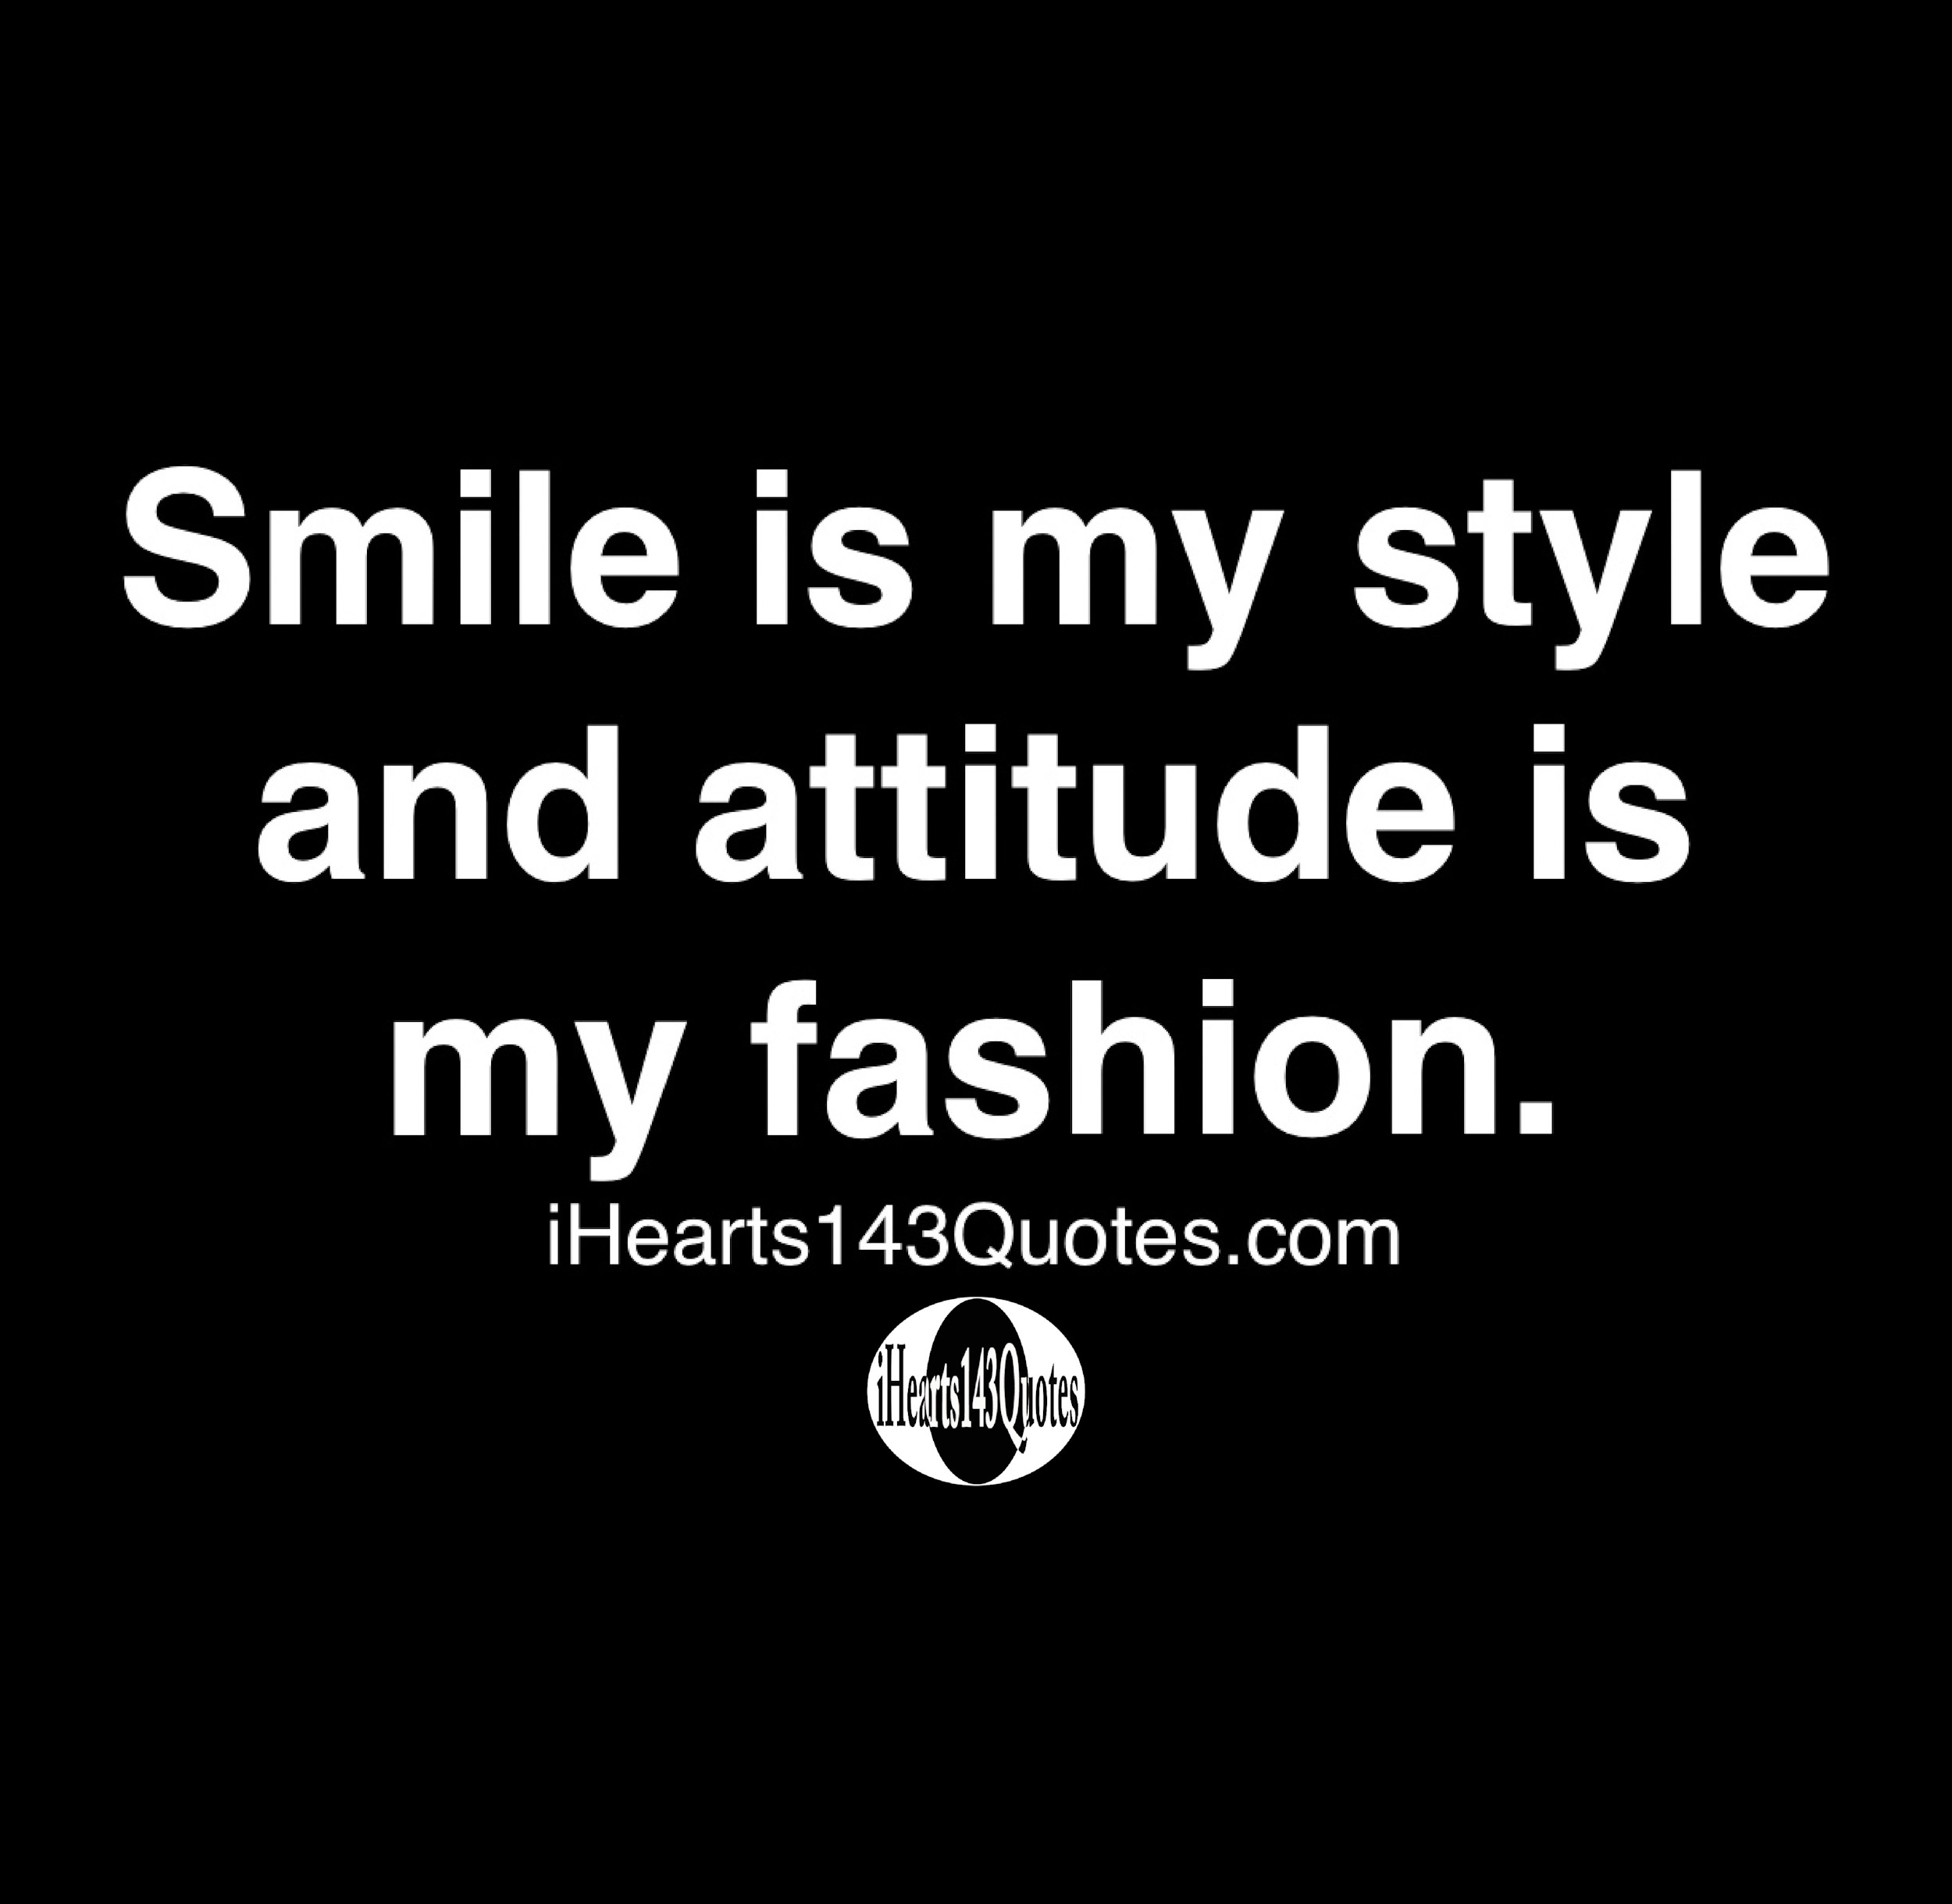 Smile Is My Style And Attitude Is My Fashion Quotes Ihearts143quotes